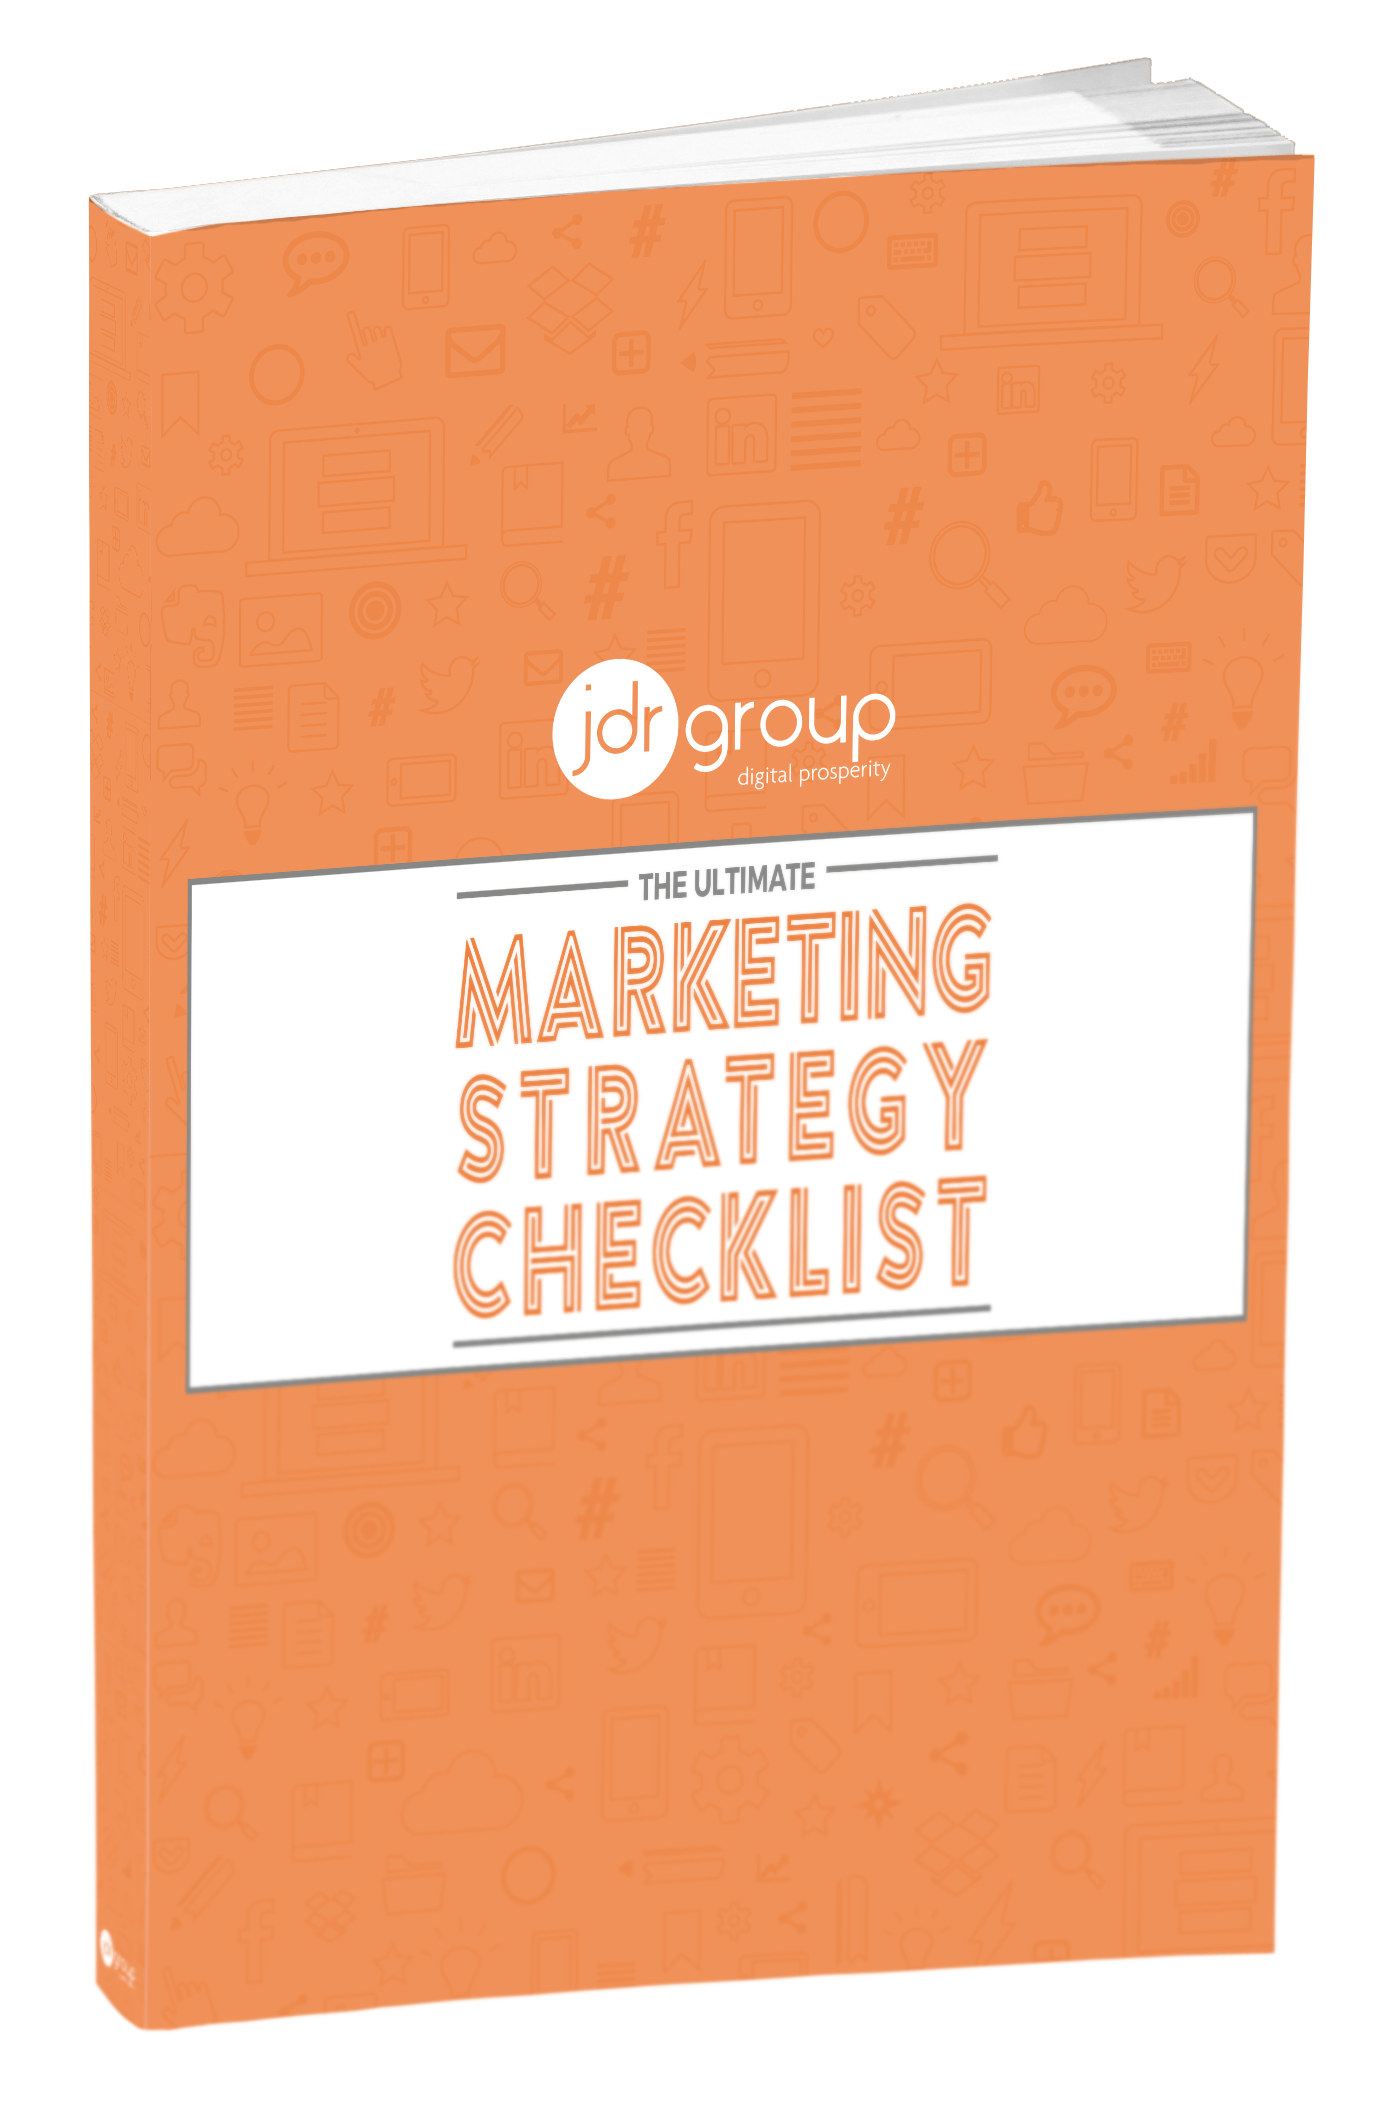 Ebook-Cover-JDR-Marketing-Strategy-Checklist-7